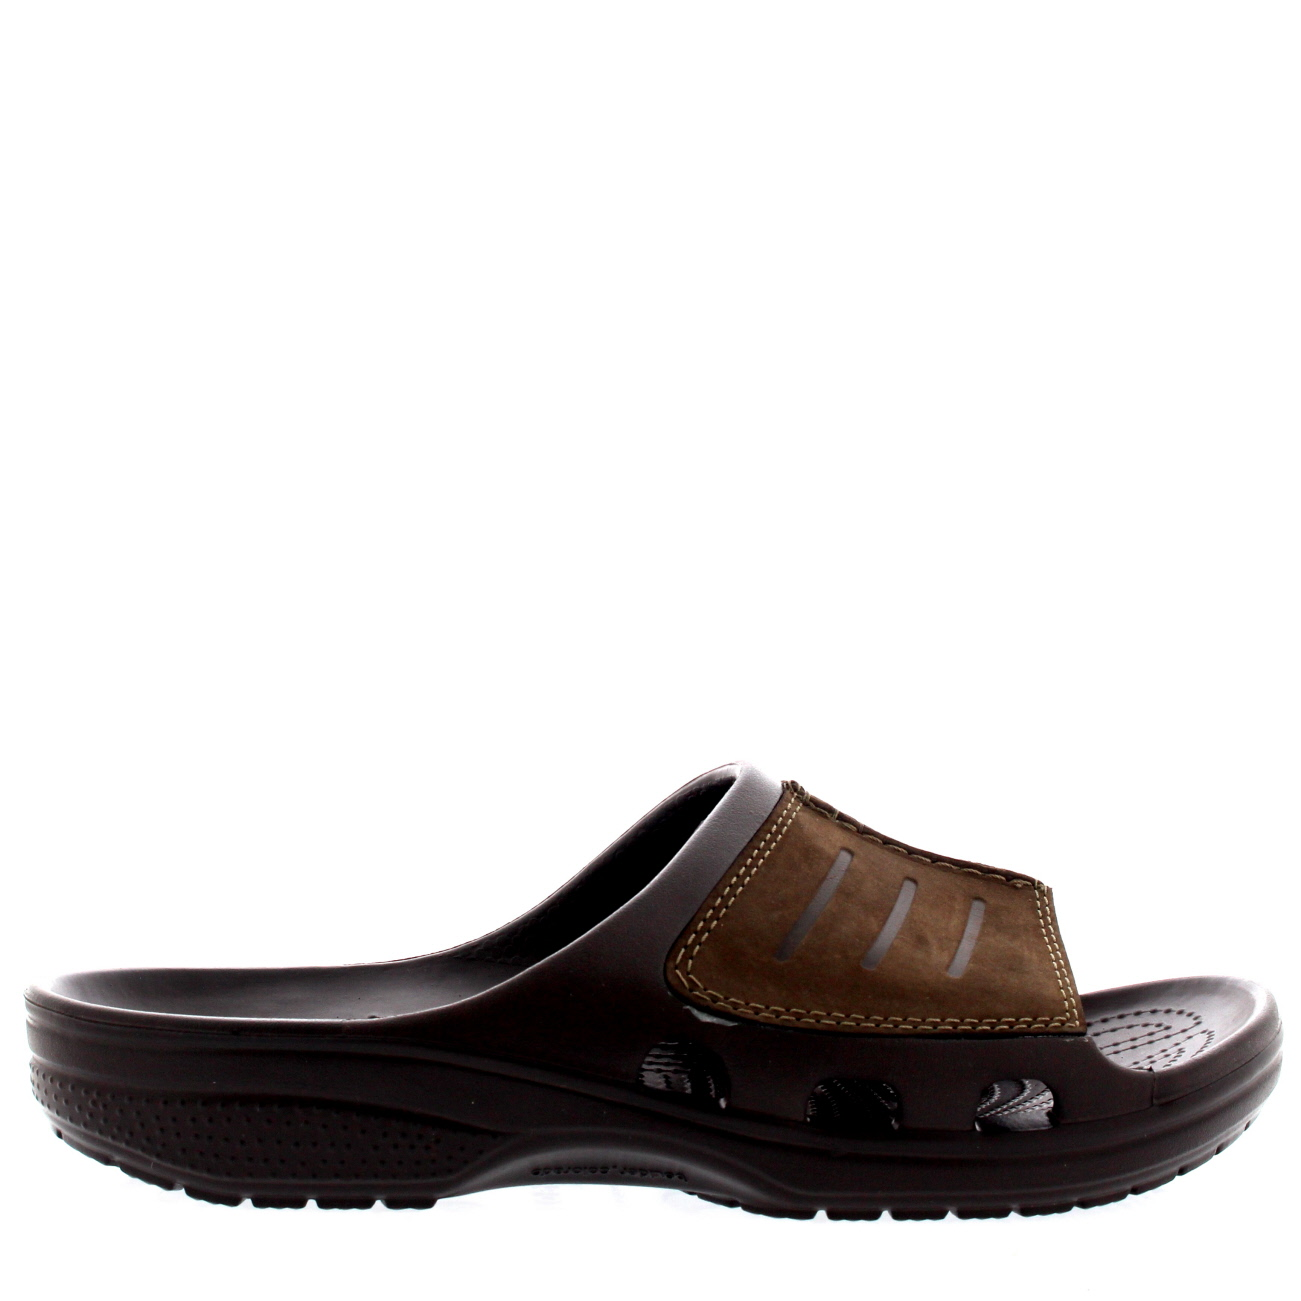 Mens Crocs Yukon Mesa Slide Lightweight Beach Slip On Open